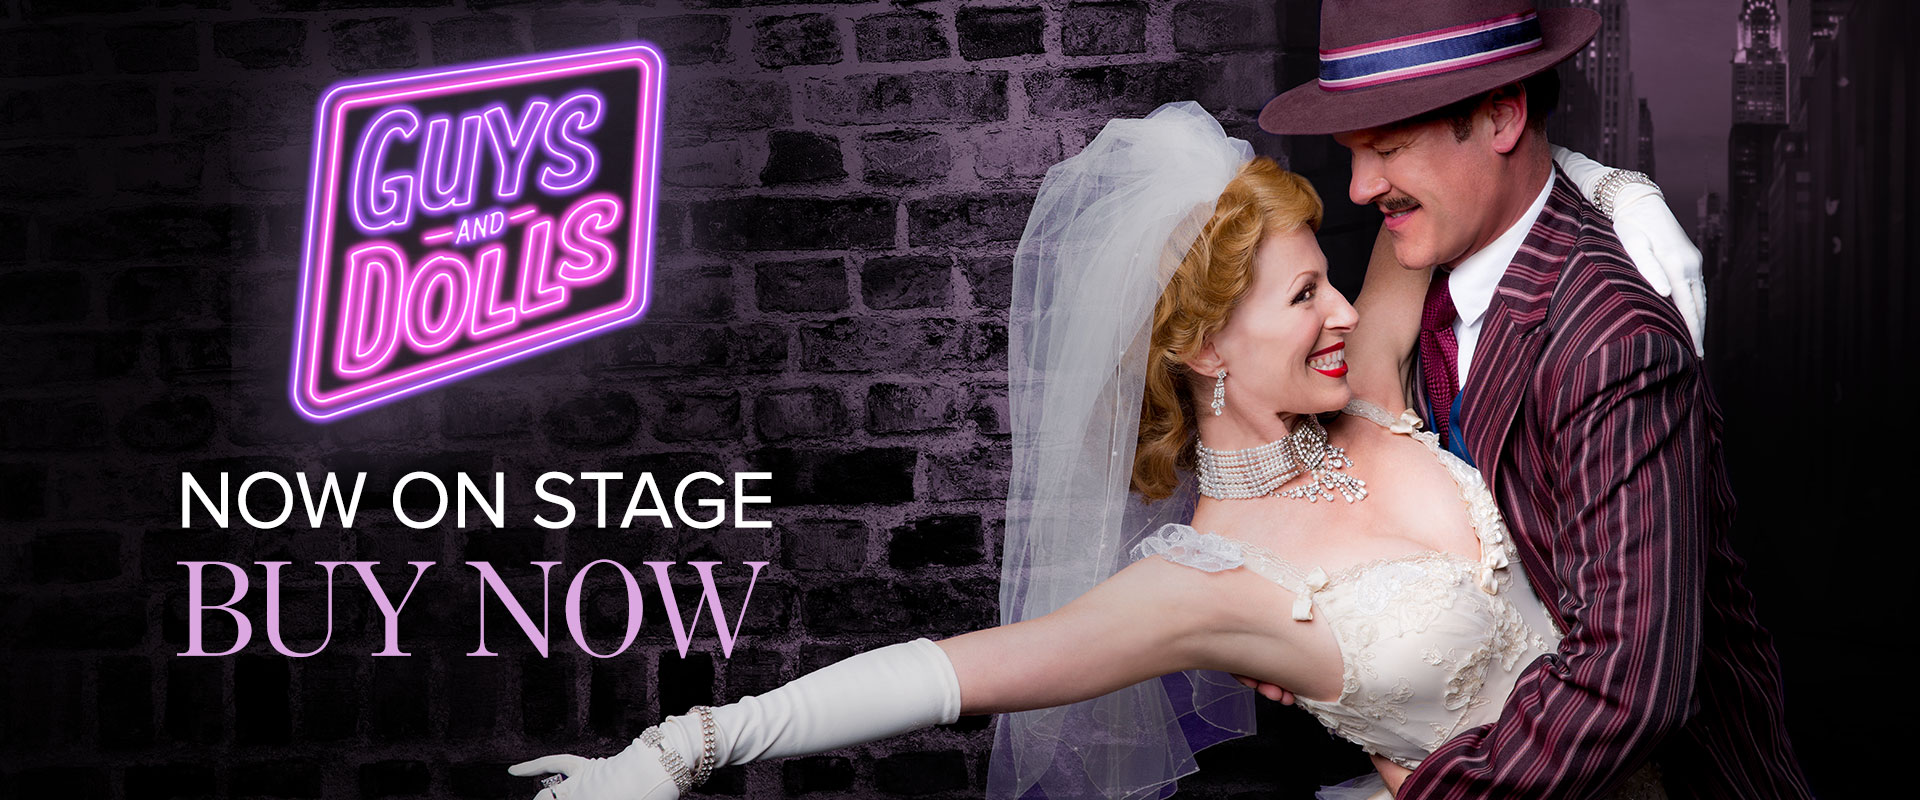 Publicity image from Guys and Dolls linking to production page